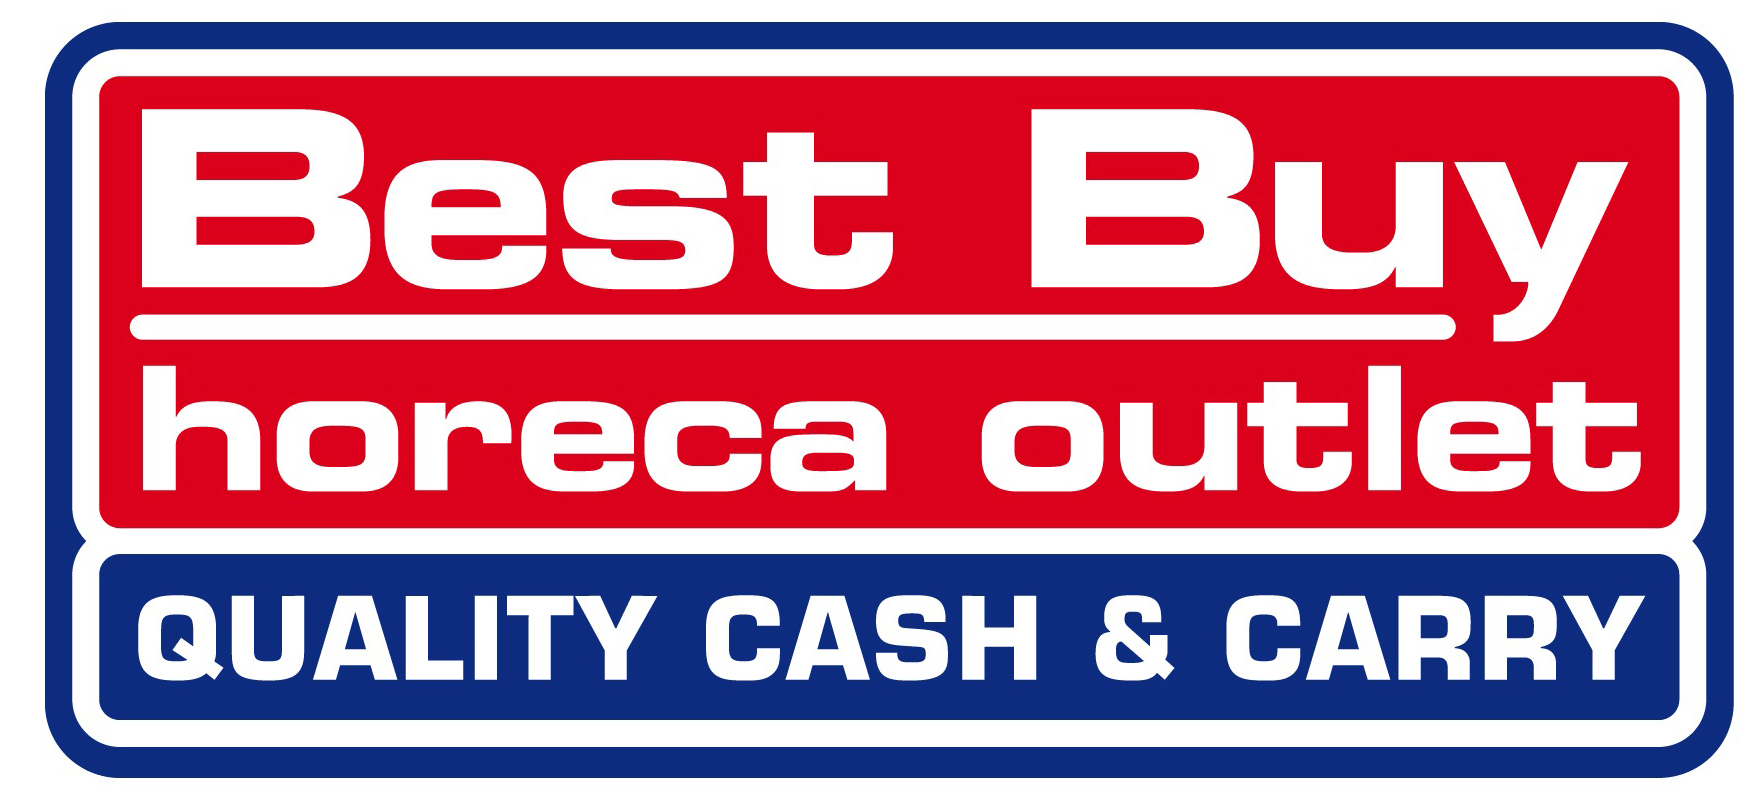 Best Buy Horeca Outlet